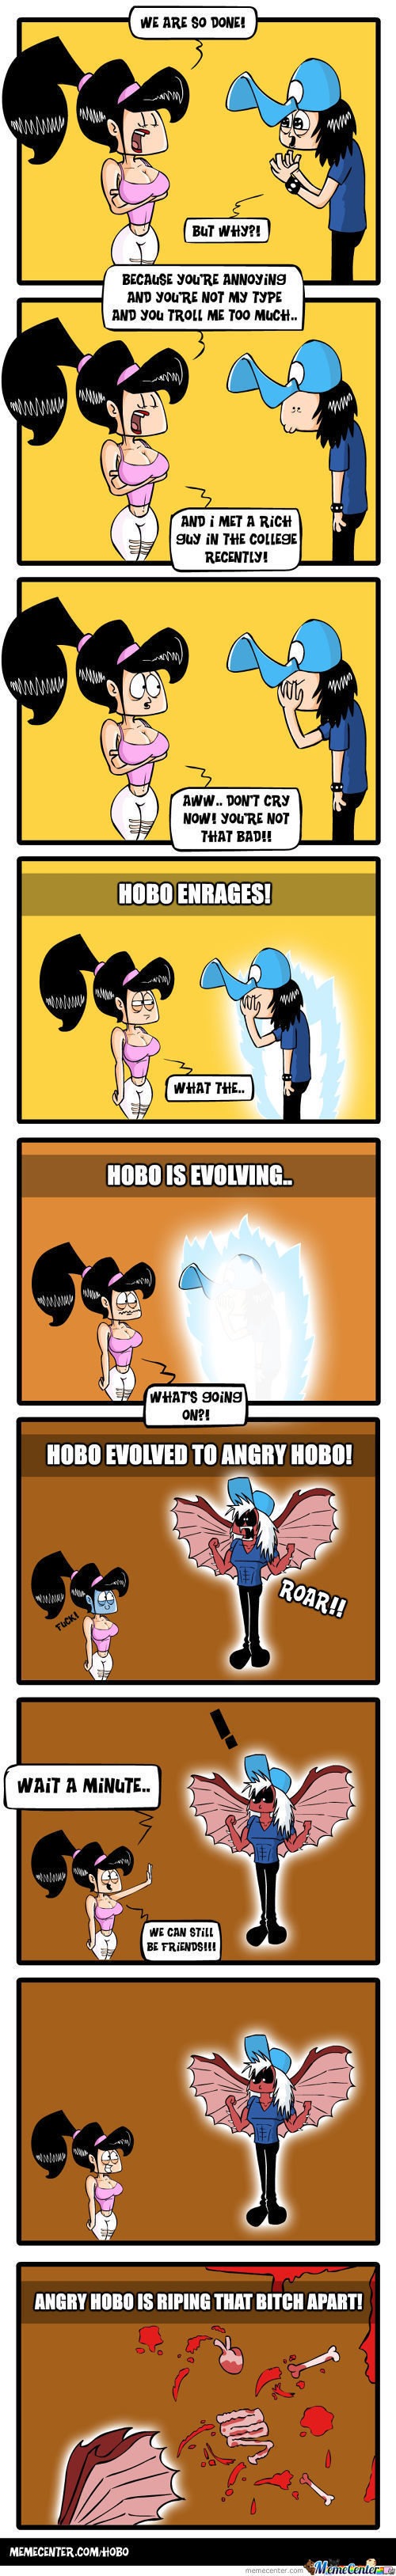 Evolution: Angry Hobo!